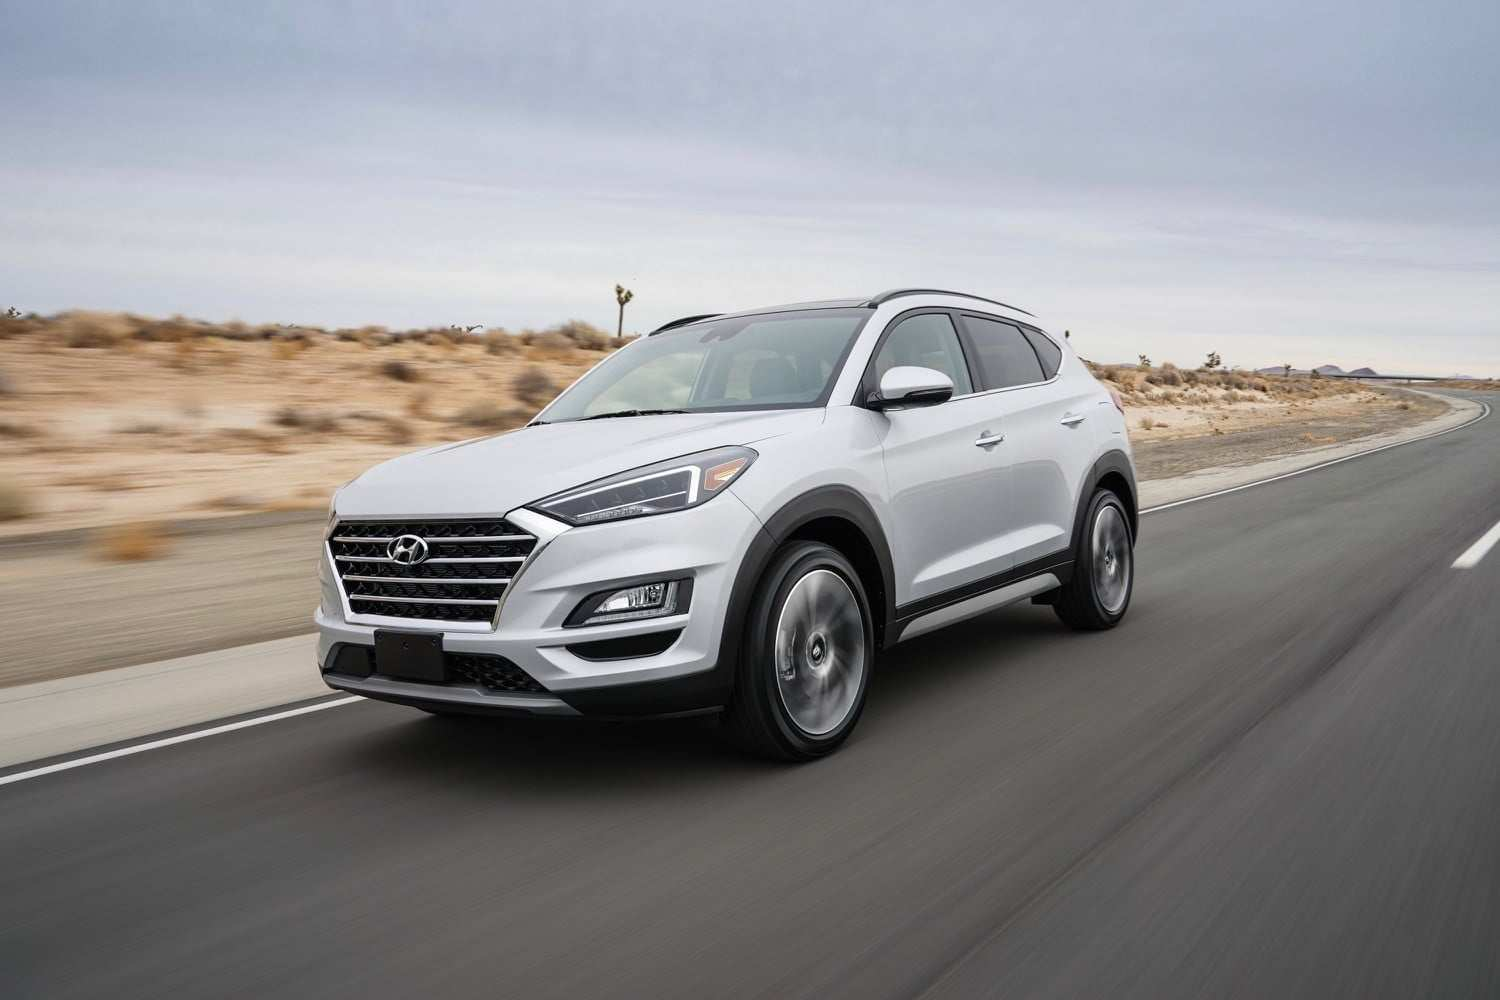 81 A New Hyundai Tucson 2020 Youtube Interior